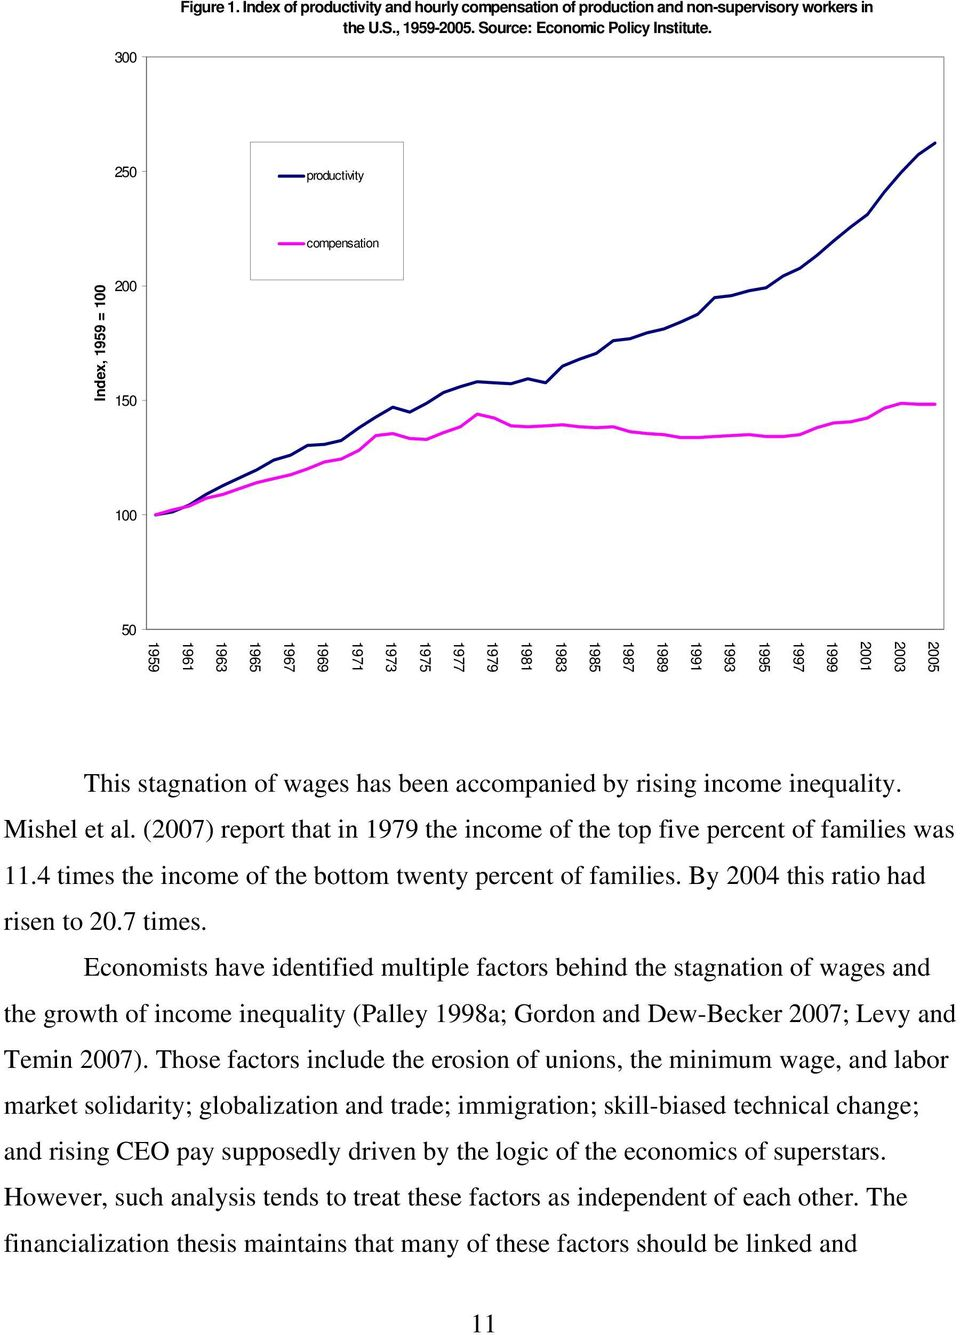 stagnation of wages has been accompanied by rising income inequality. Mishel et al. (2007) report that in 1979 the income of the top five percent of families was 11.